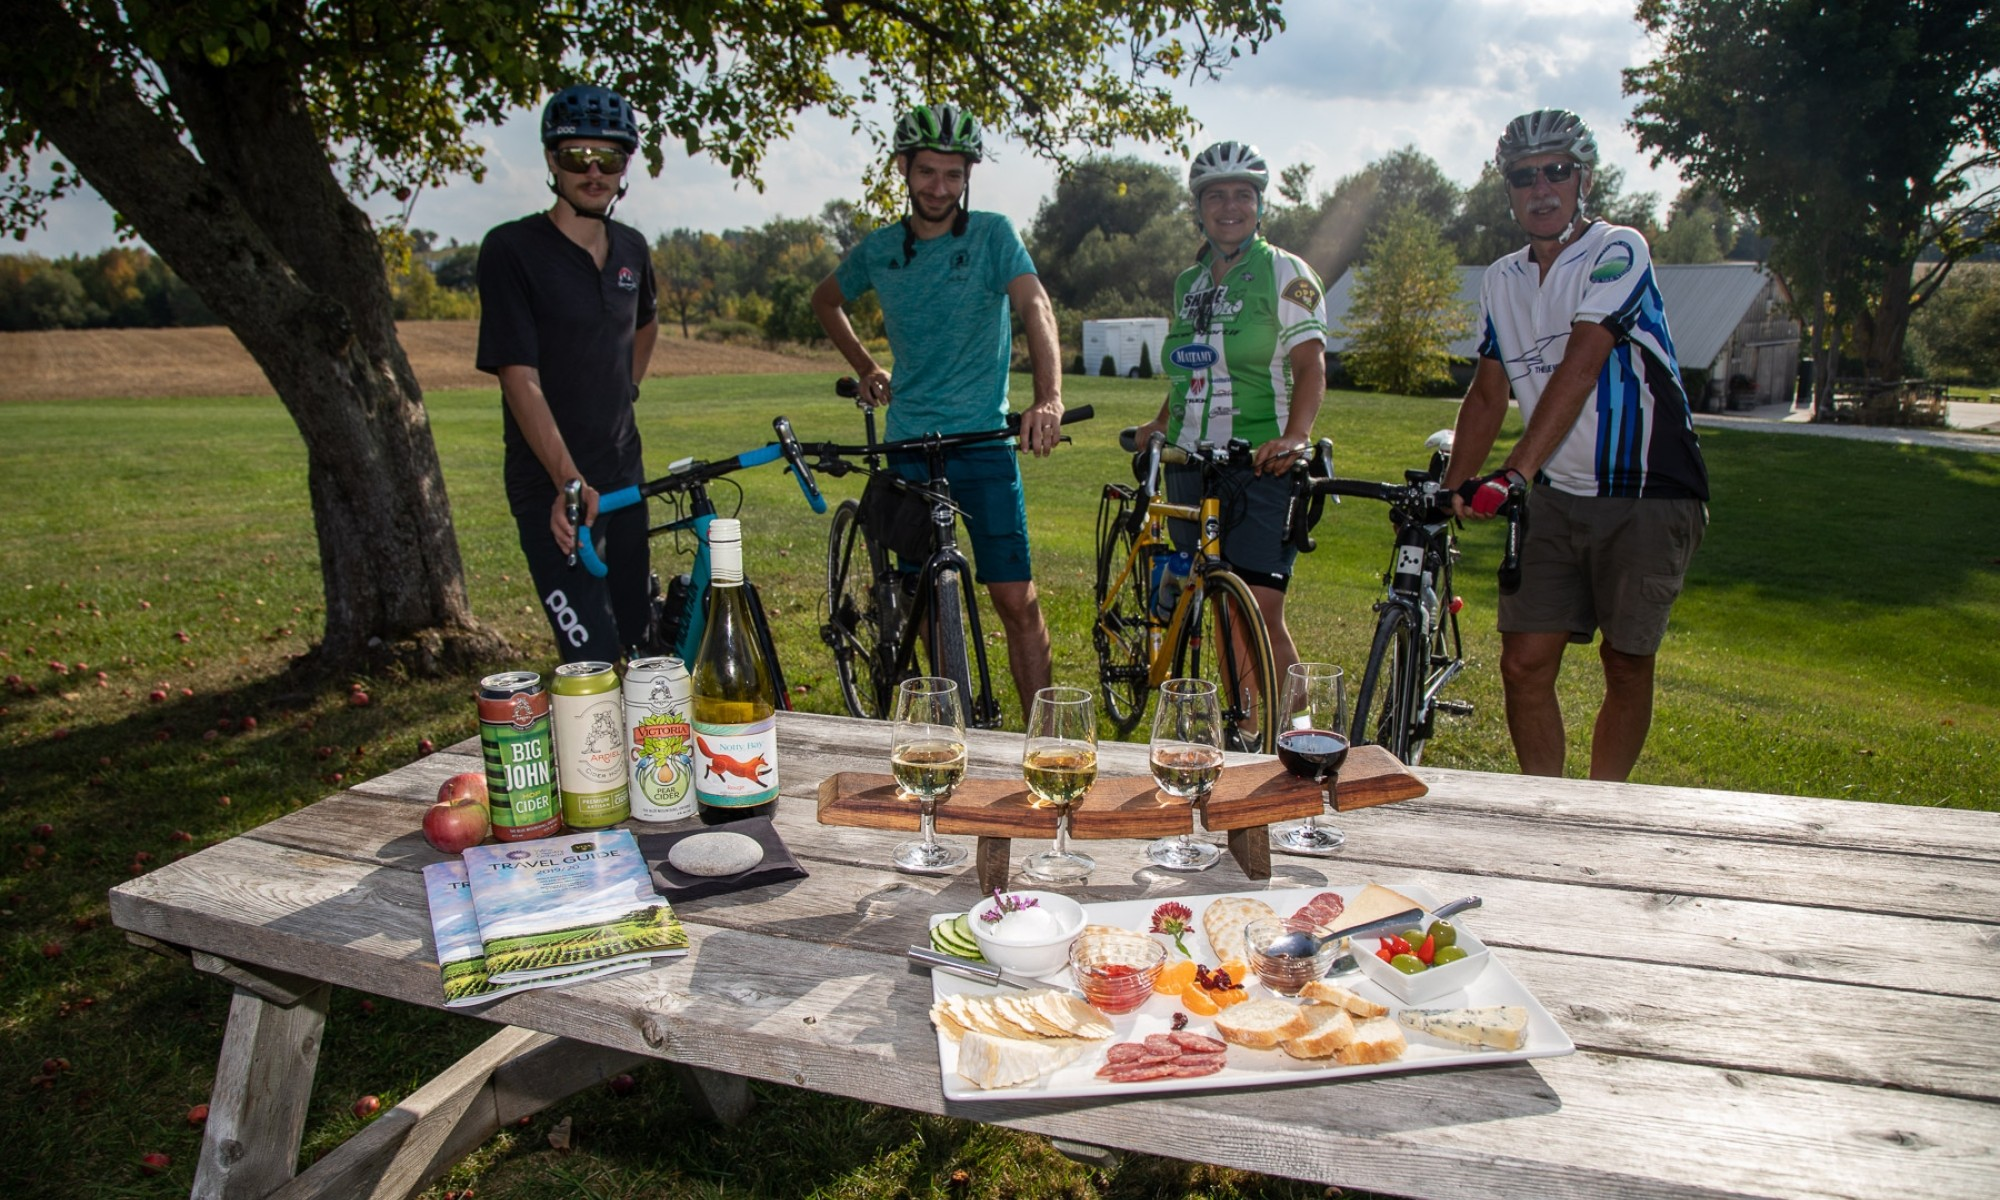 Four cyclists standing behind a charcuturie platter and flight of wine